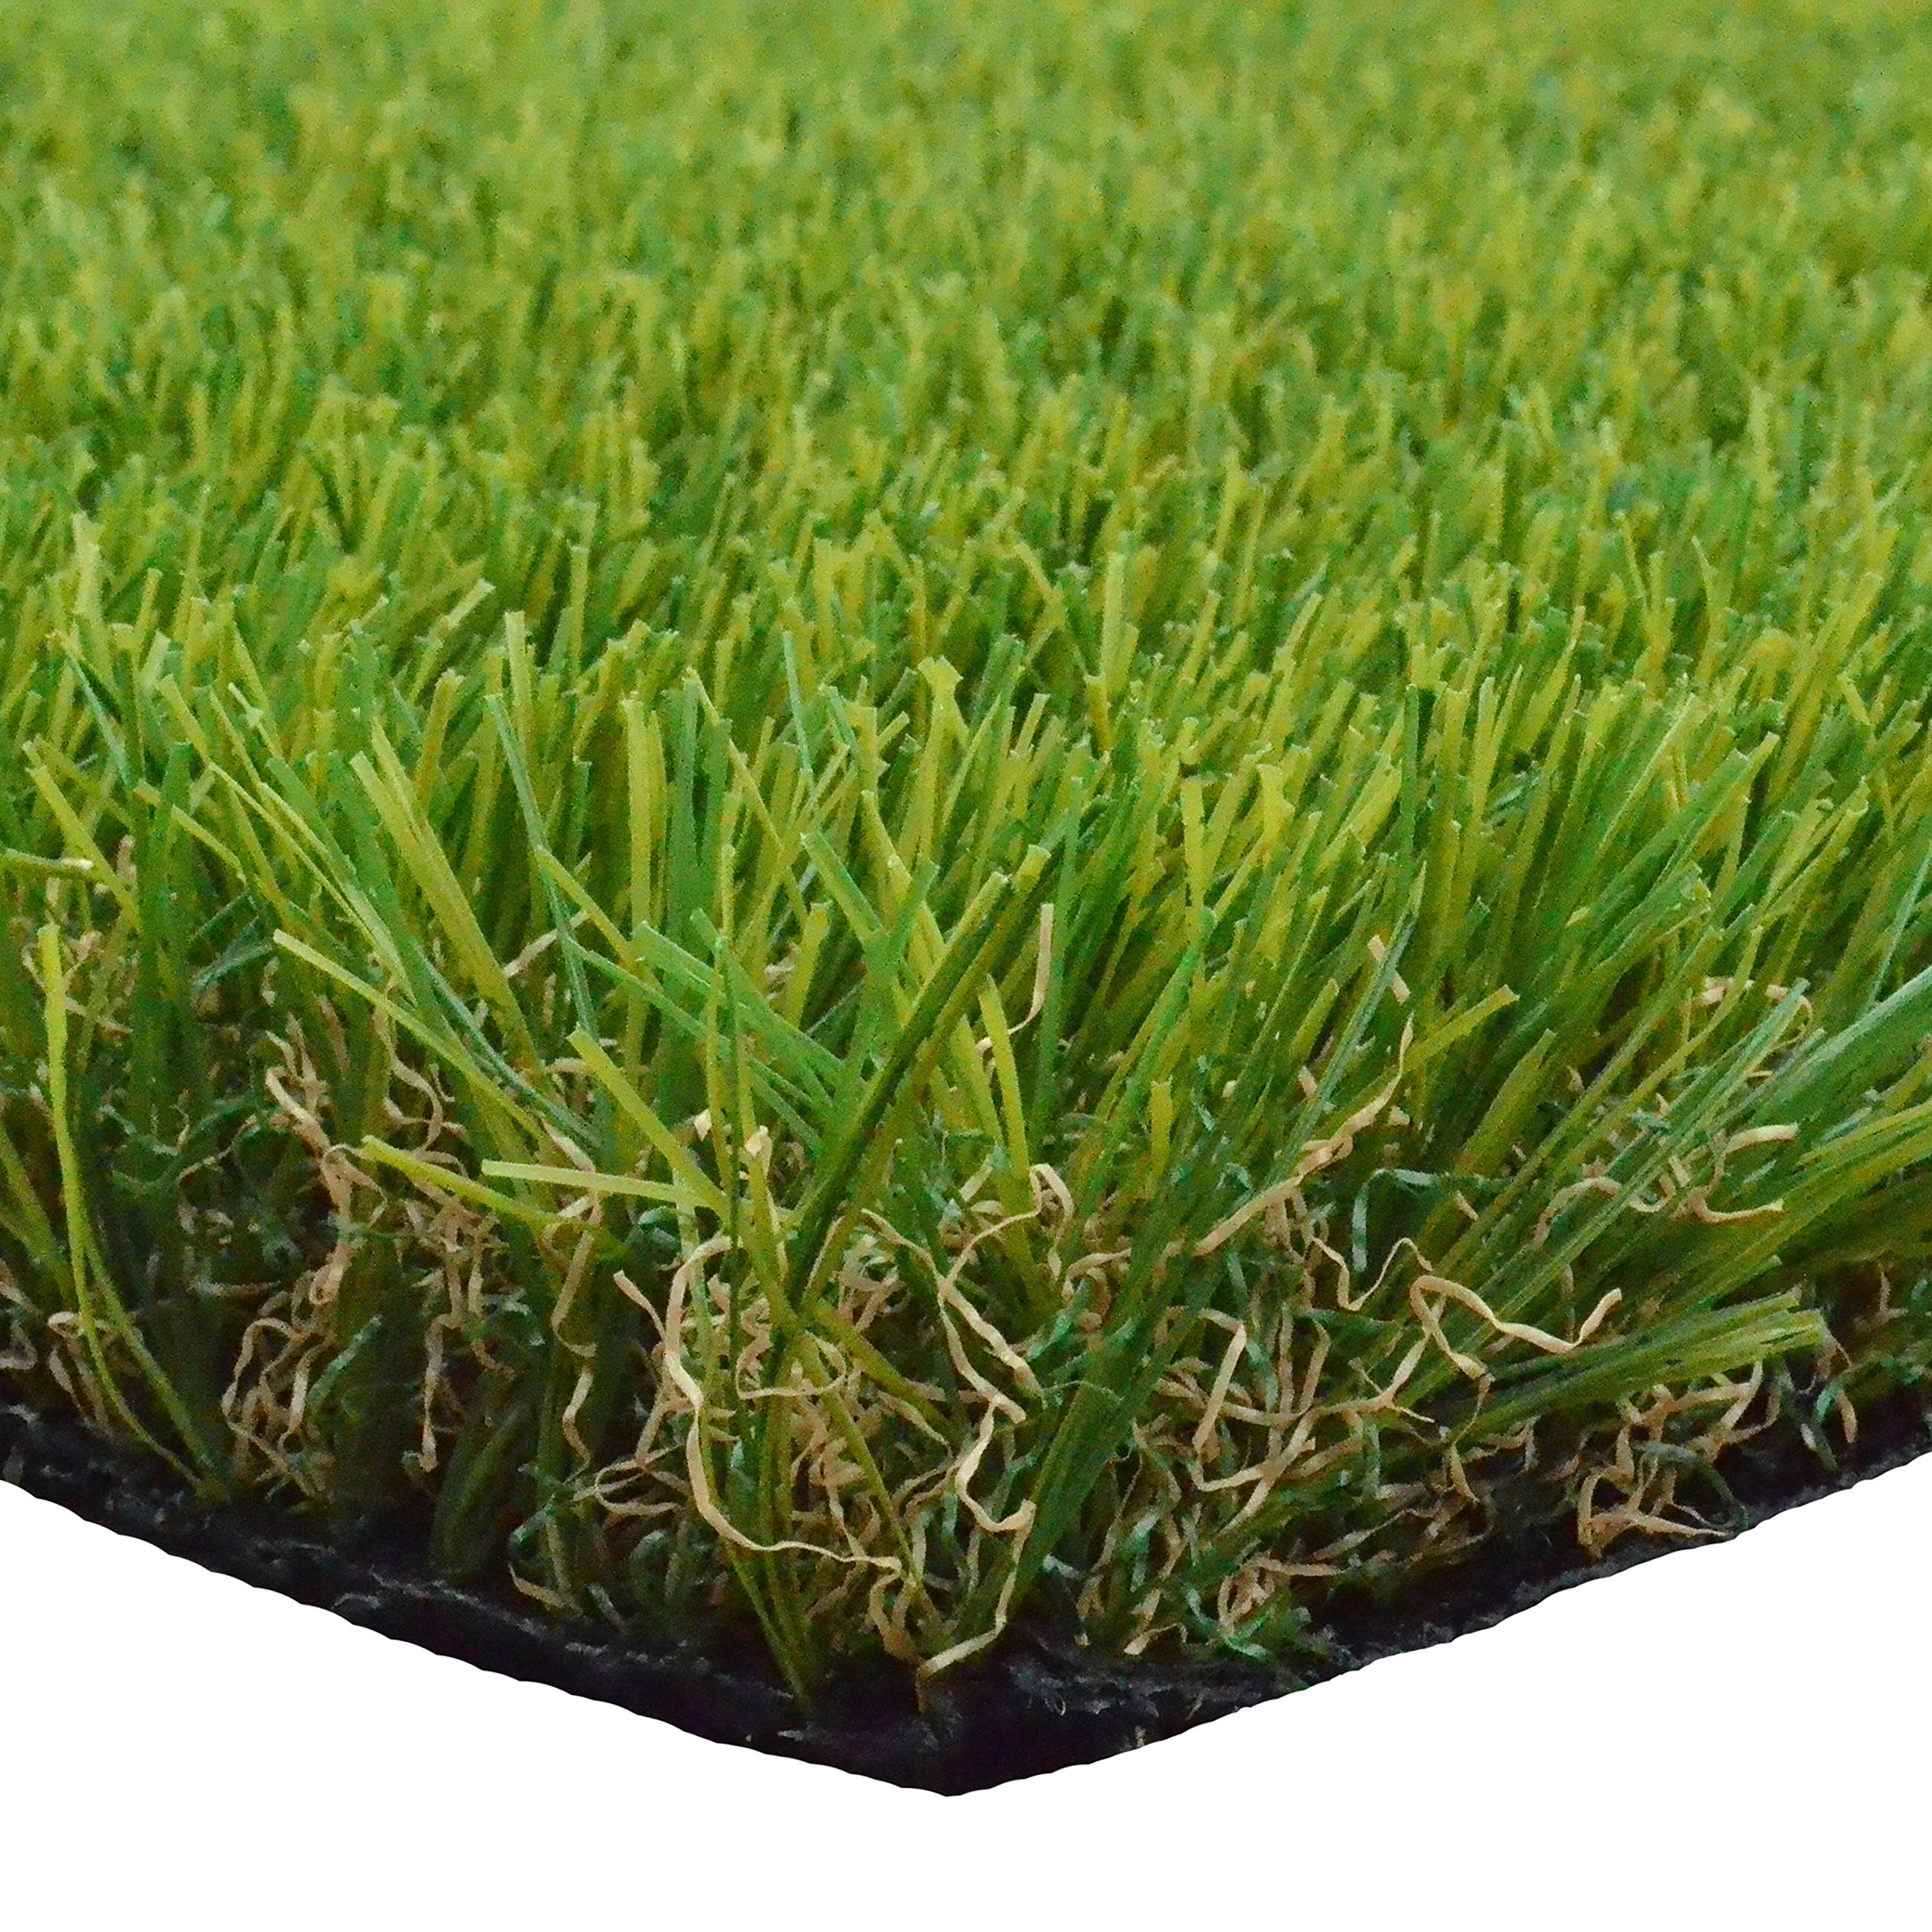 Artificial Grass Turf Lawn Fake Grass Thick Synthetic Turf Carpet Indoor Outdoor Garden Lawn Landscape Rubber Backed with Drainage Holes,1.77inch Pile Height (3.3ft x 9.8ft = 32.3 sqaure ft)